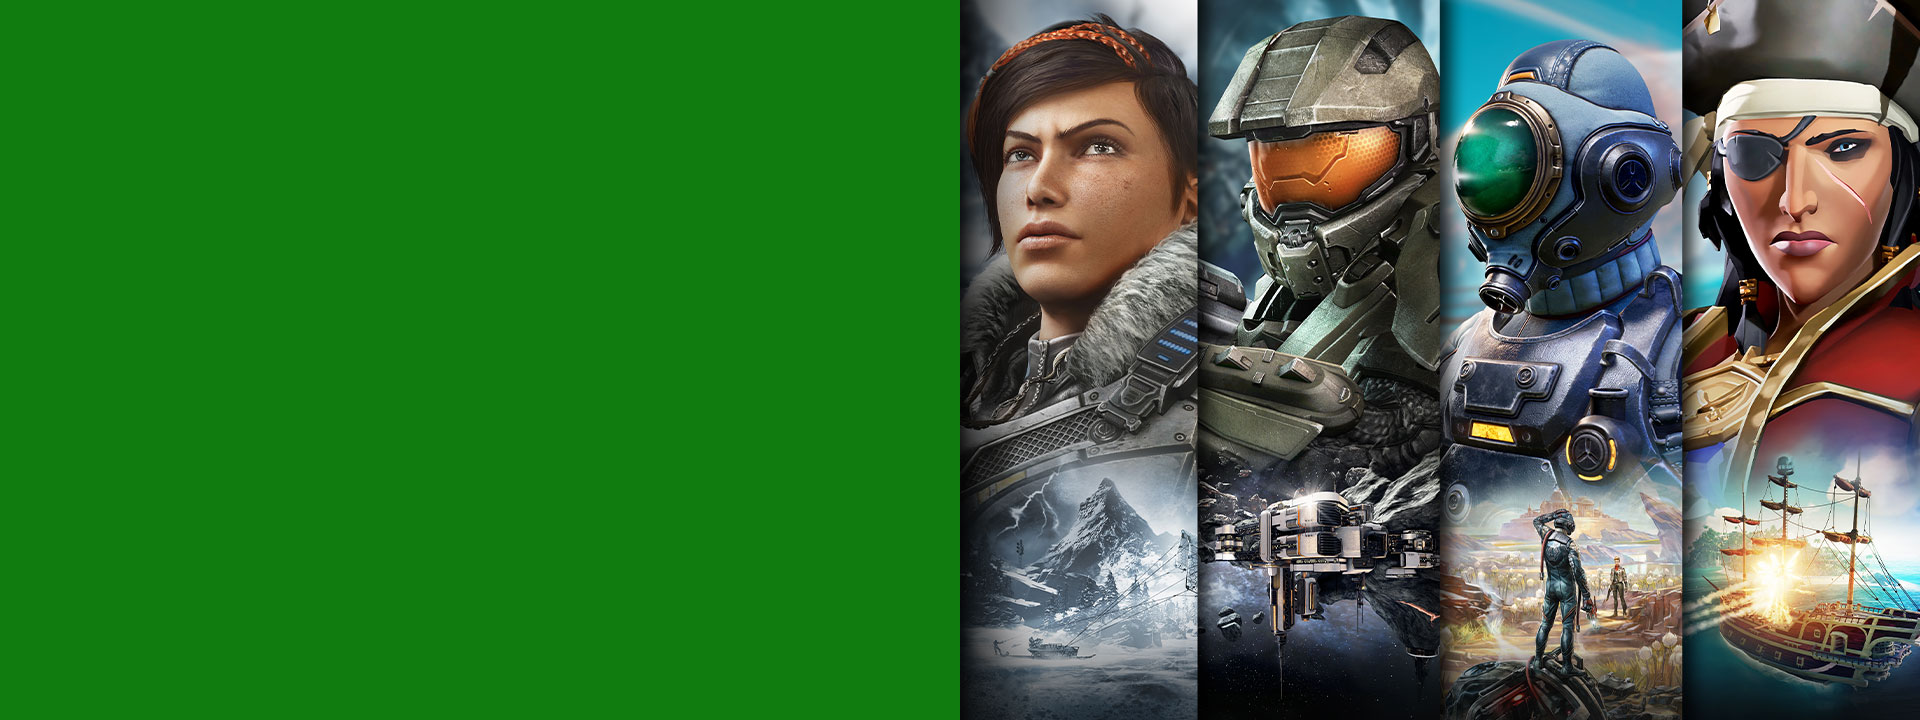 Personagens de jogos do Xbox Game Pass de Gears 5, Halo, The Outer Worlds e Sea of Thieves.